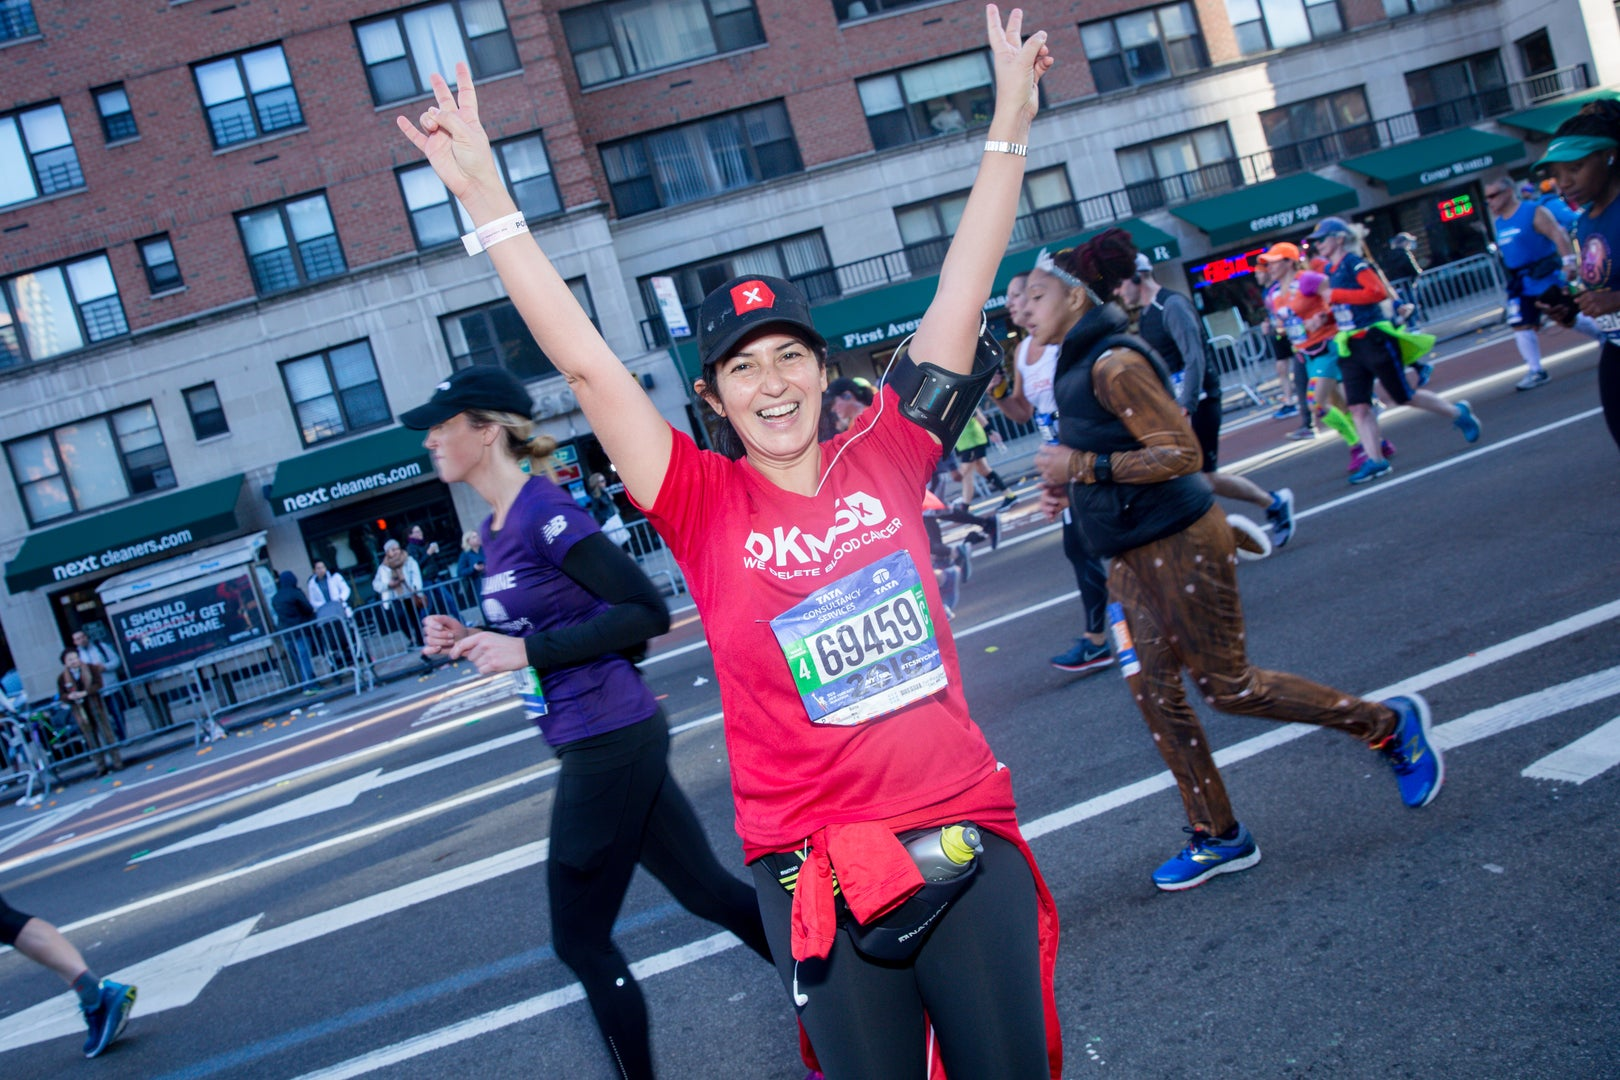 DKMS donor Burcu running for Team DKMS in the NYC Marathon in 2018.